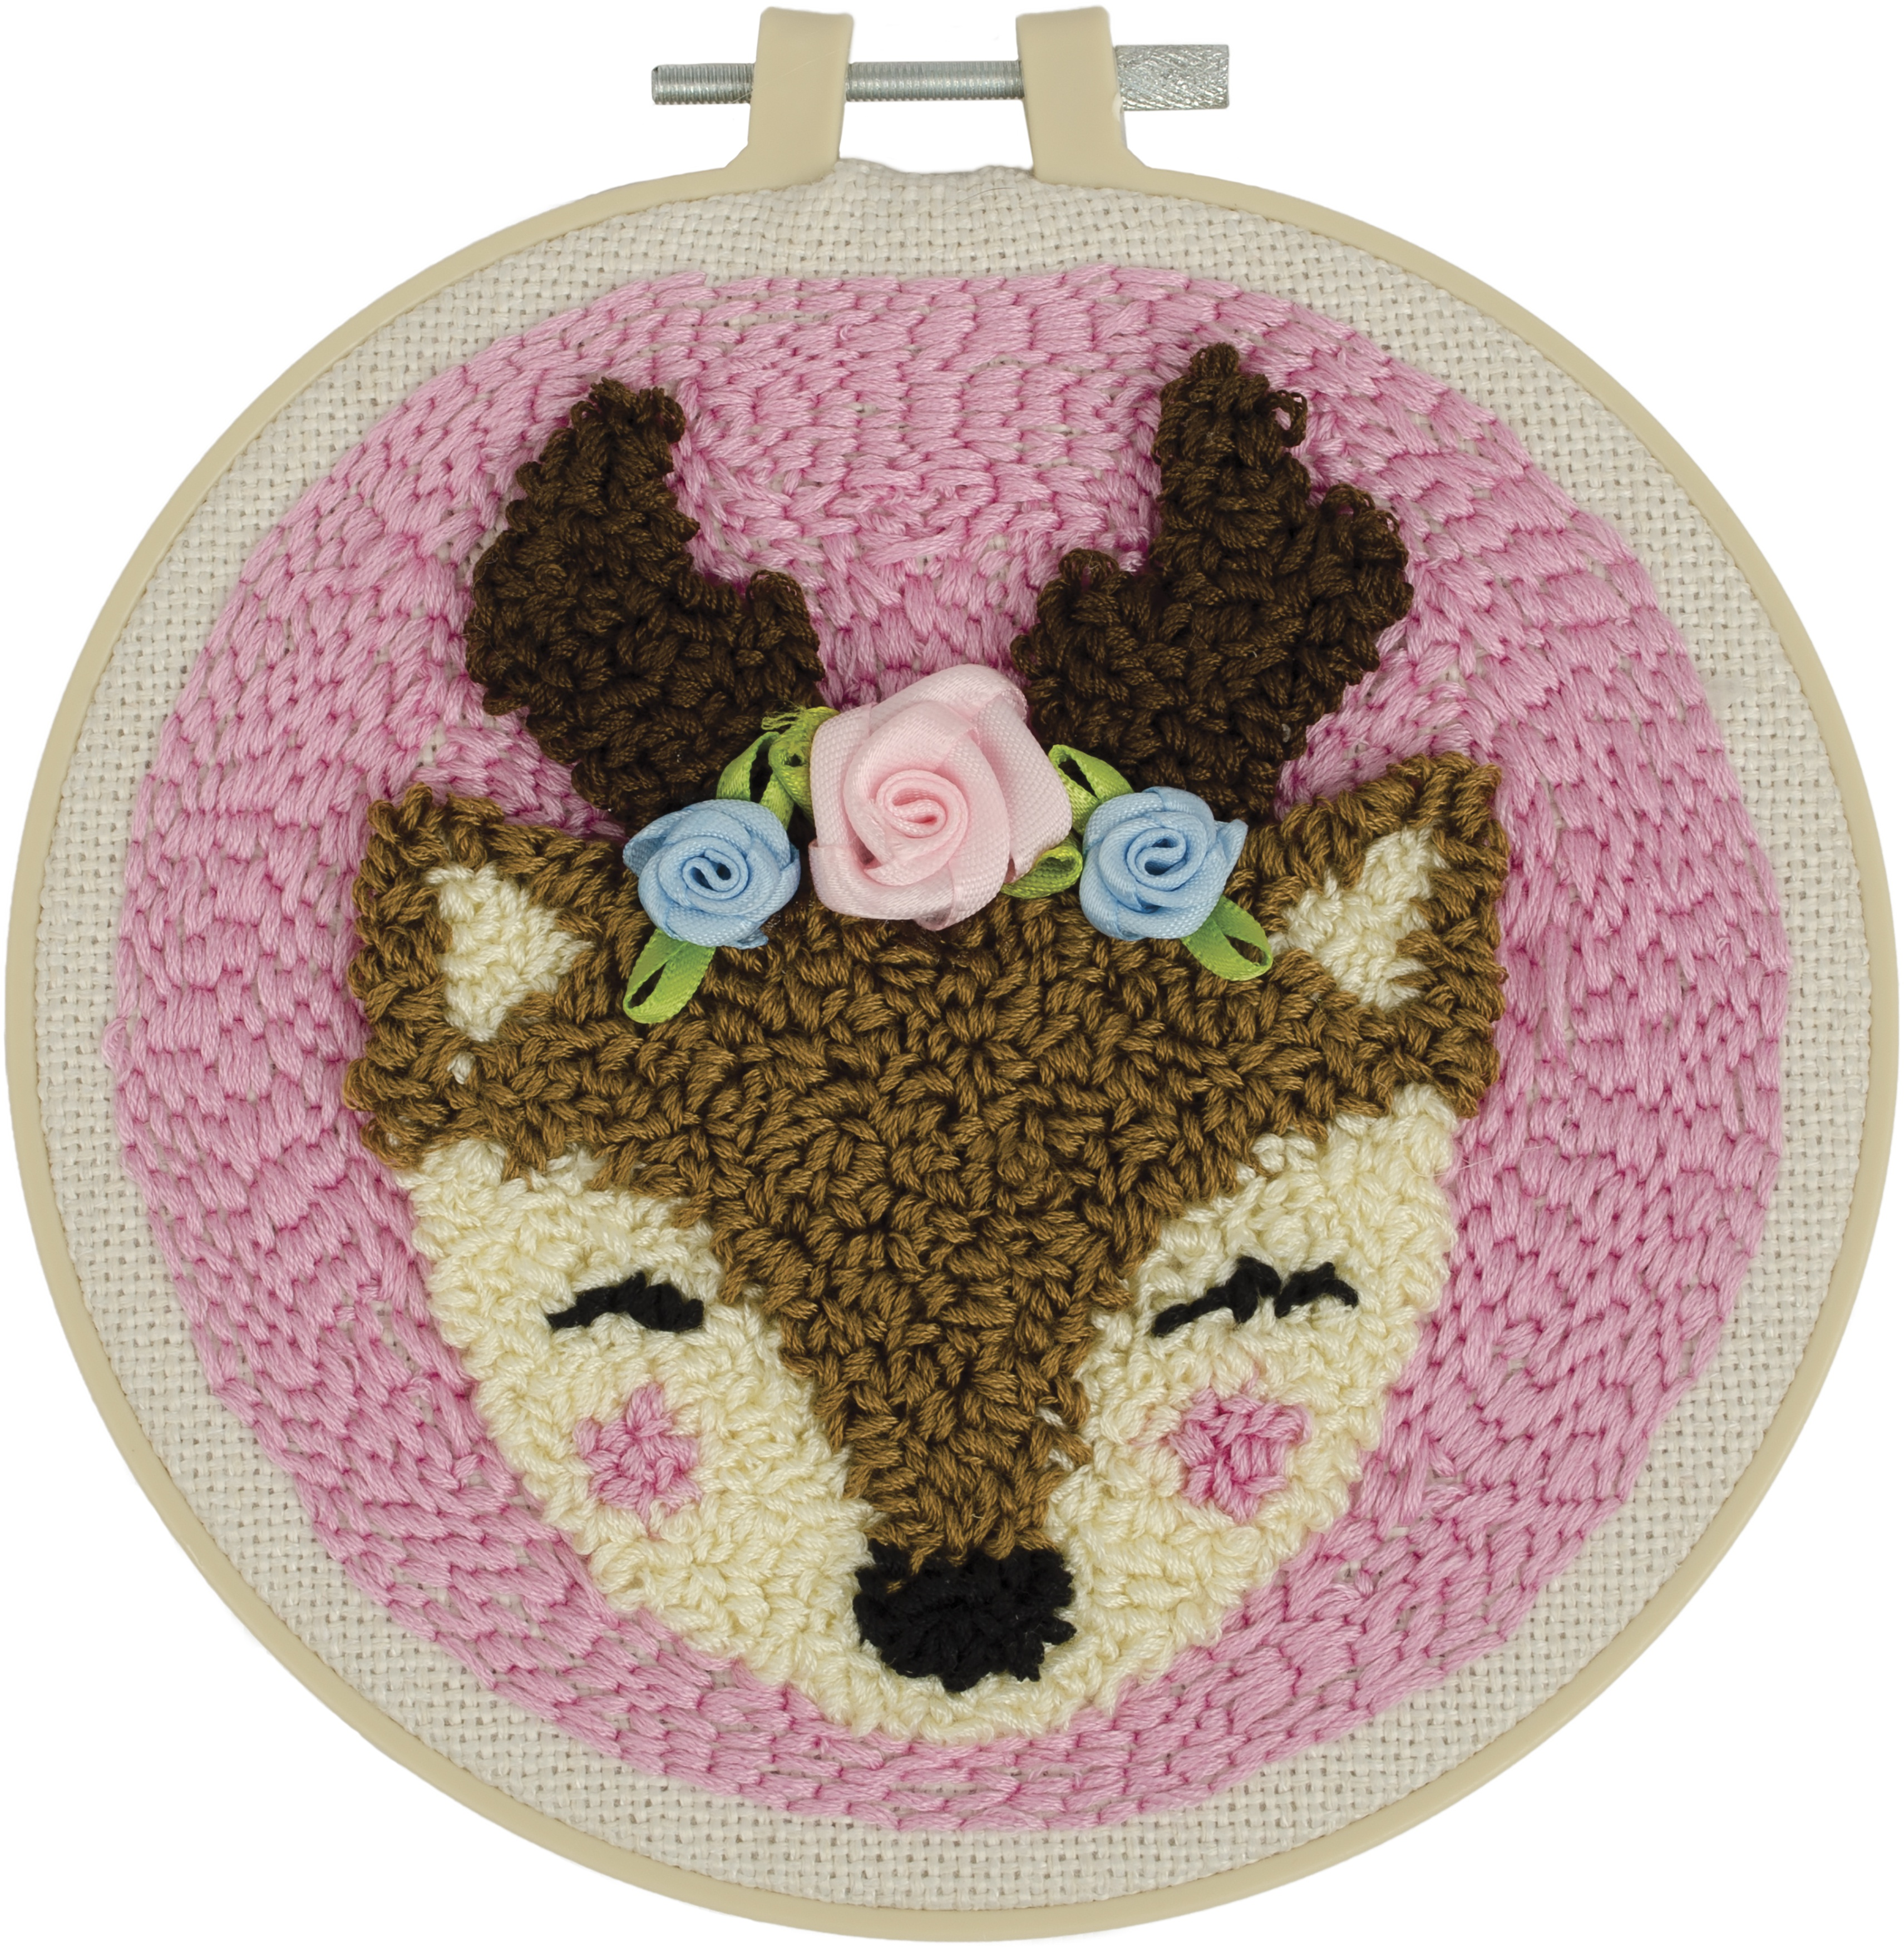 Fabric Editions Needle Creations Needle Punch Kit 6-Deer